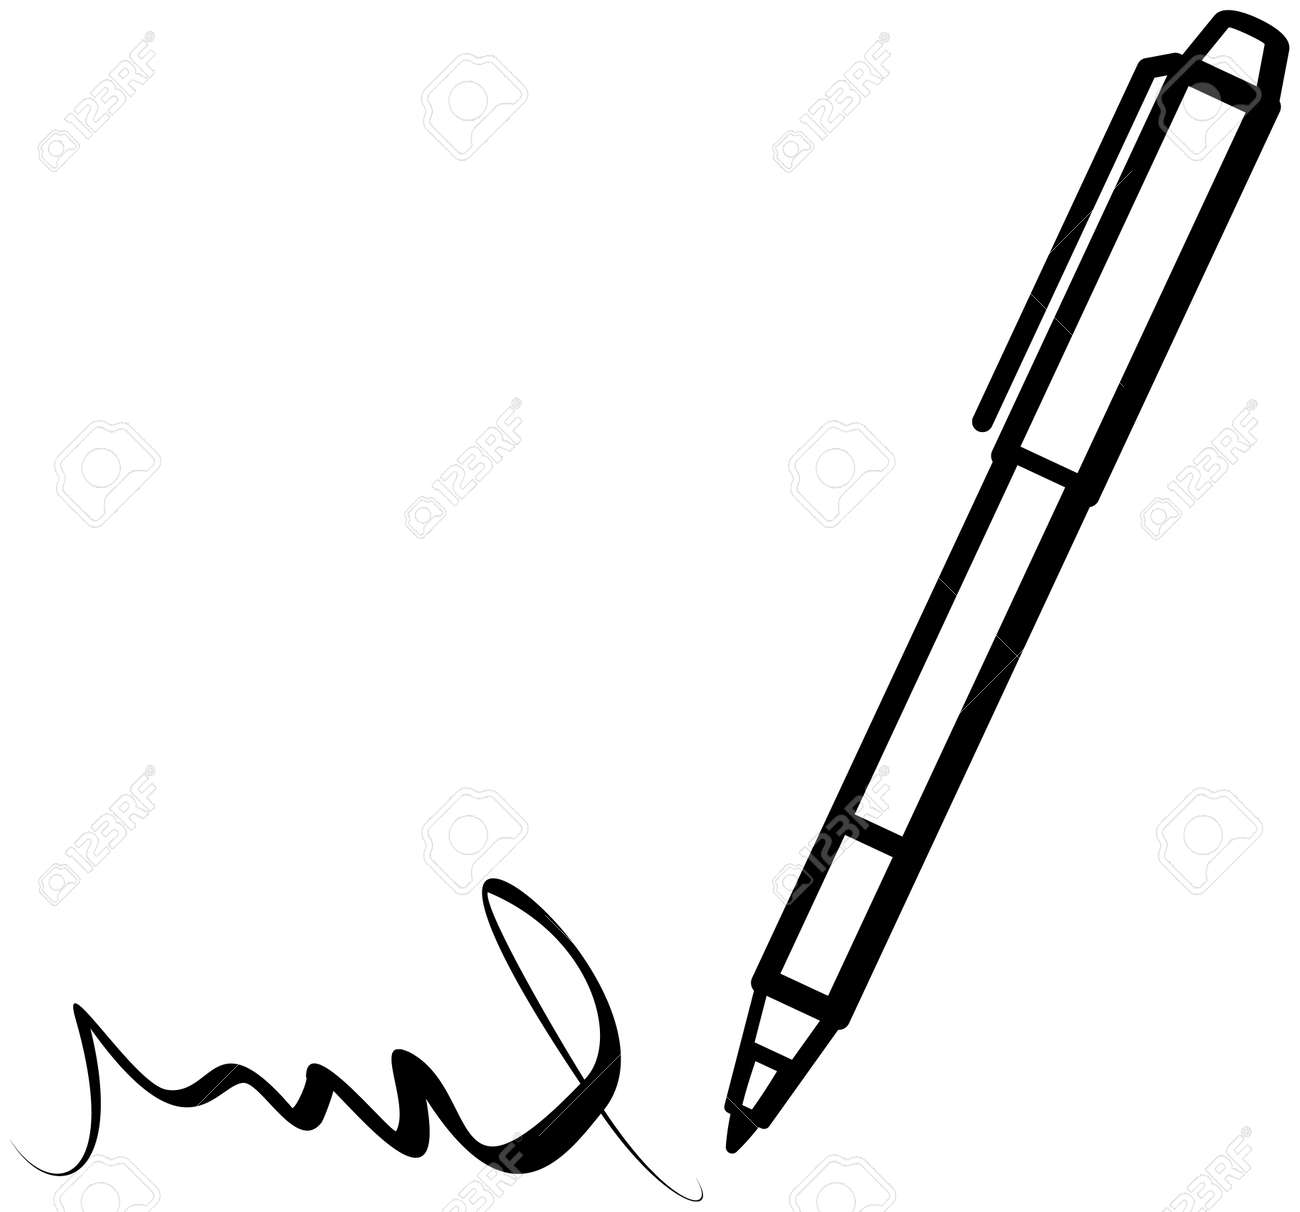 writing pen vector royalty free cliparts vectors and stock rh 123rf com pen vector png pen vector icon